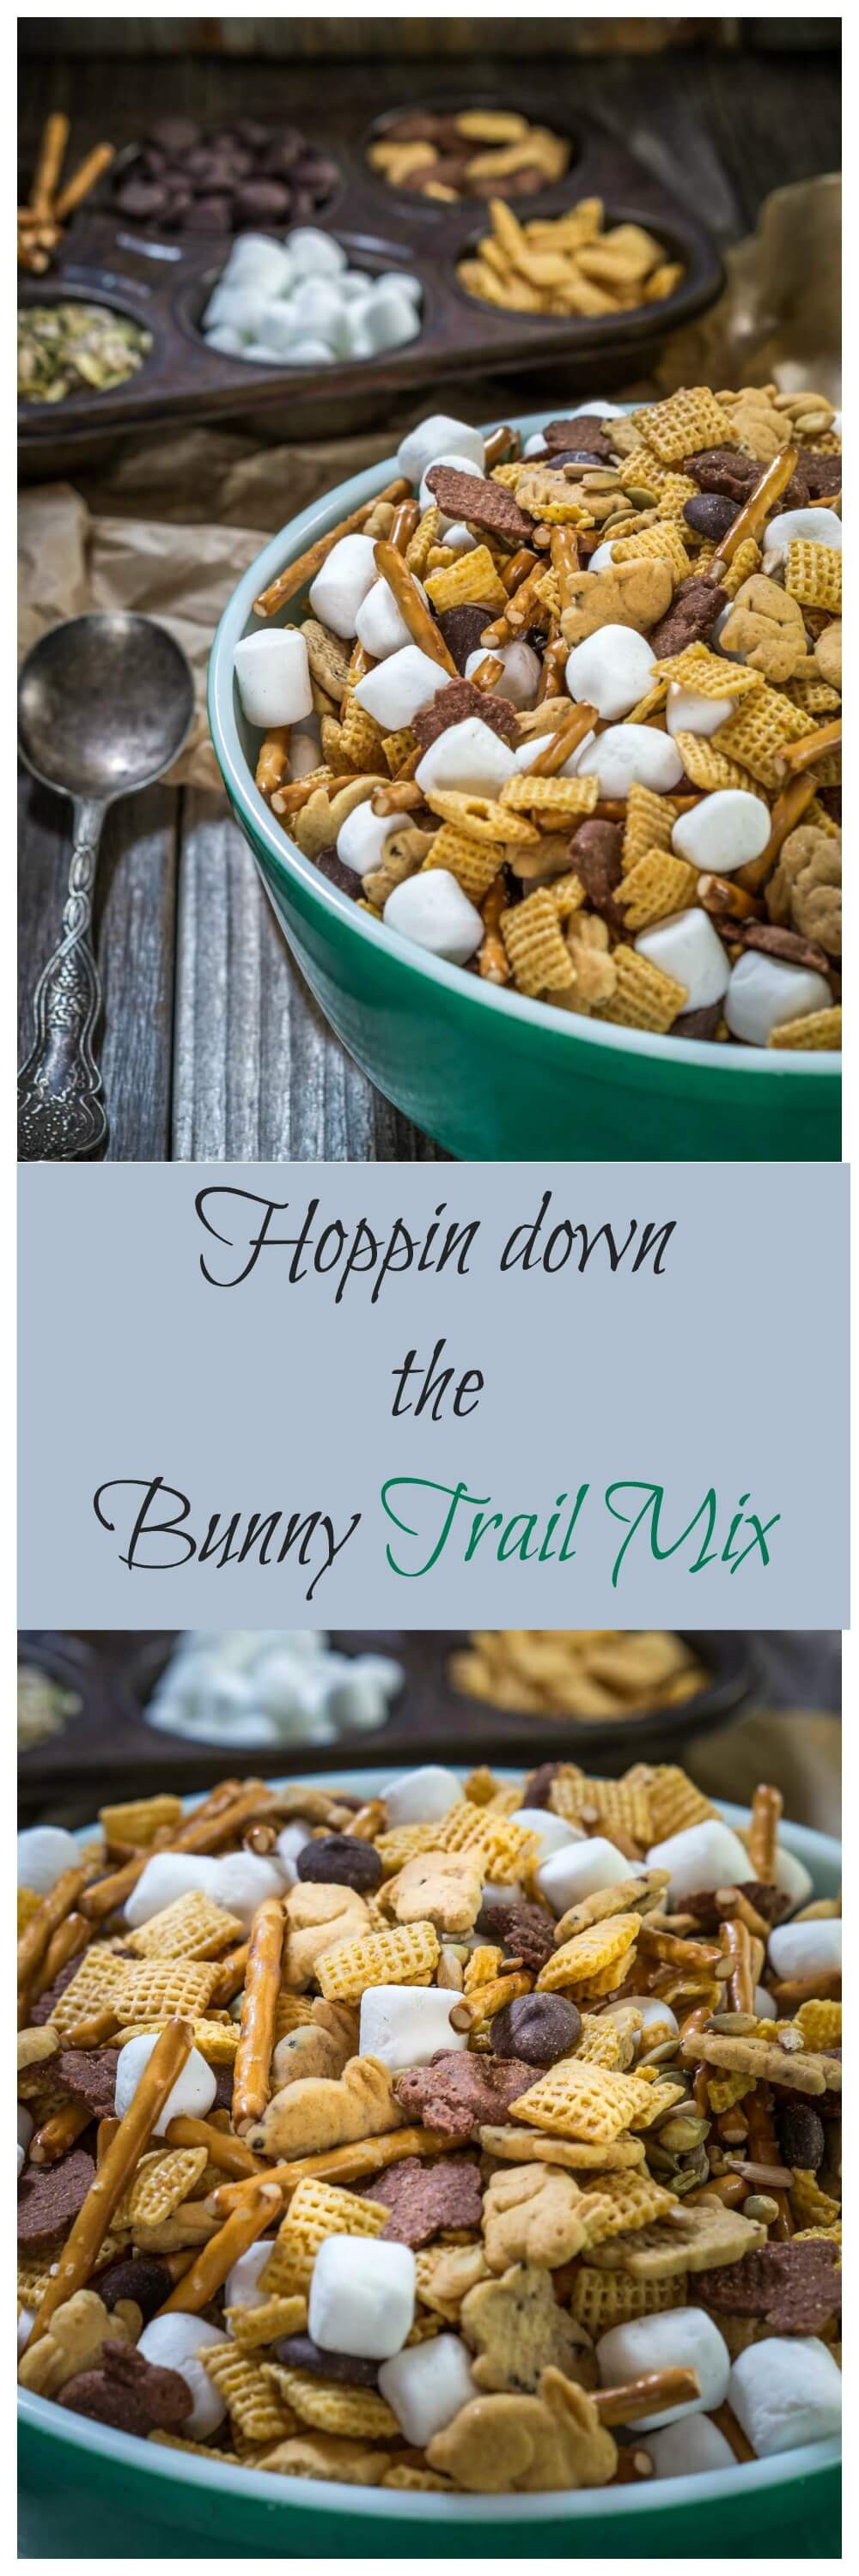 Hoppin Down The Bunny Trail Mix is a great snack that includes whole grains and some good for you seeds. It's a perfect for after school or for traveling | HostessAtHeart.com